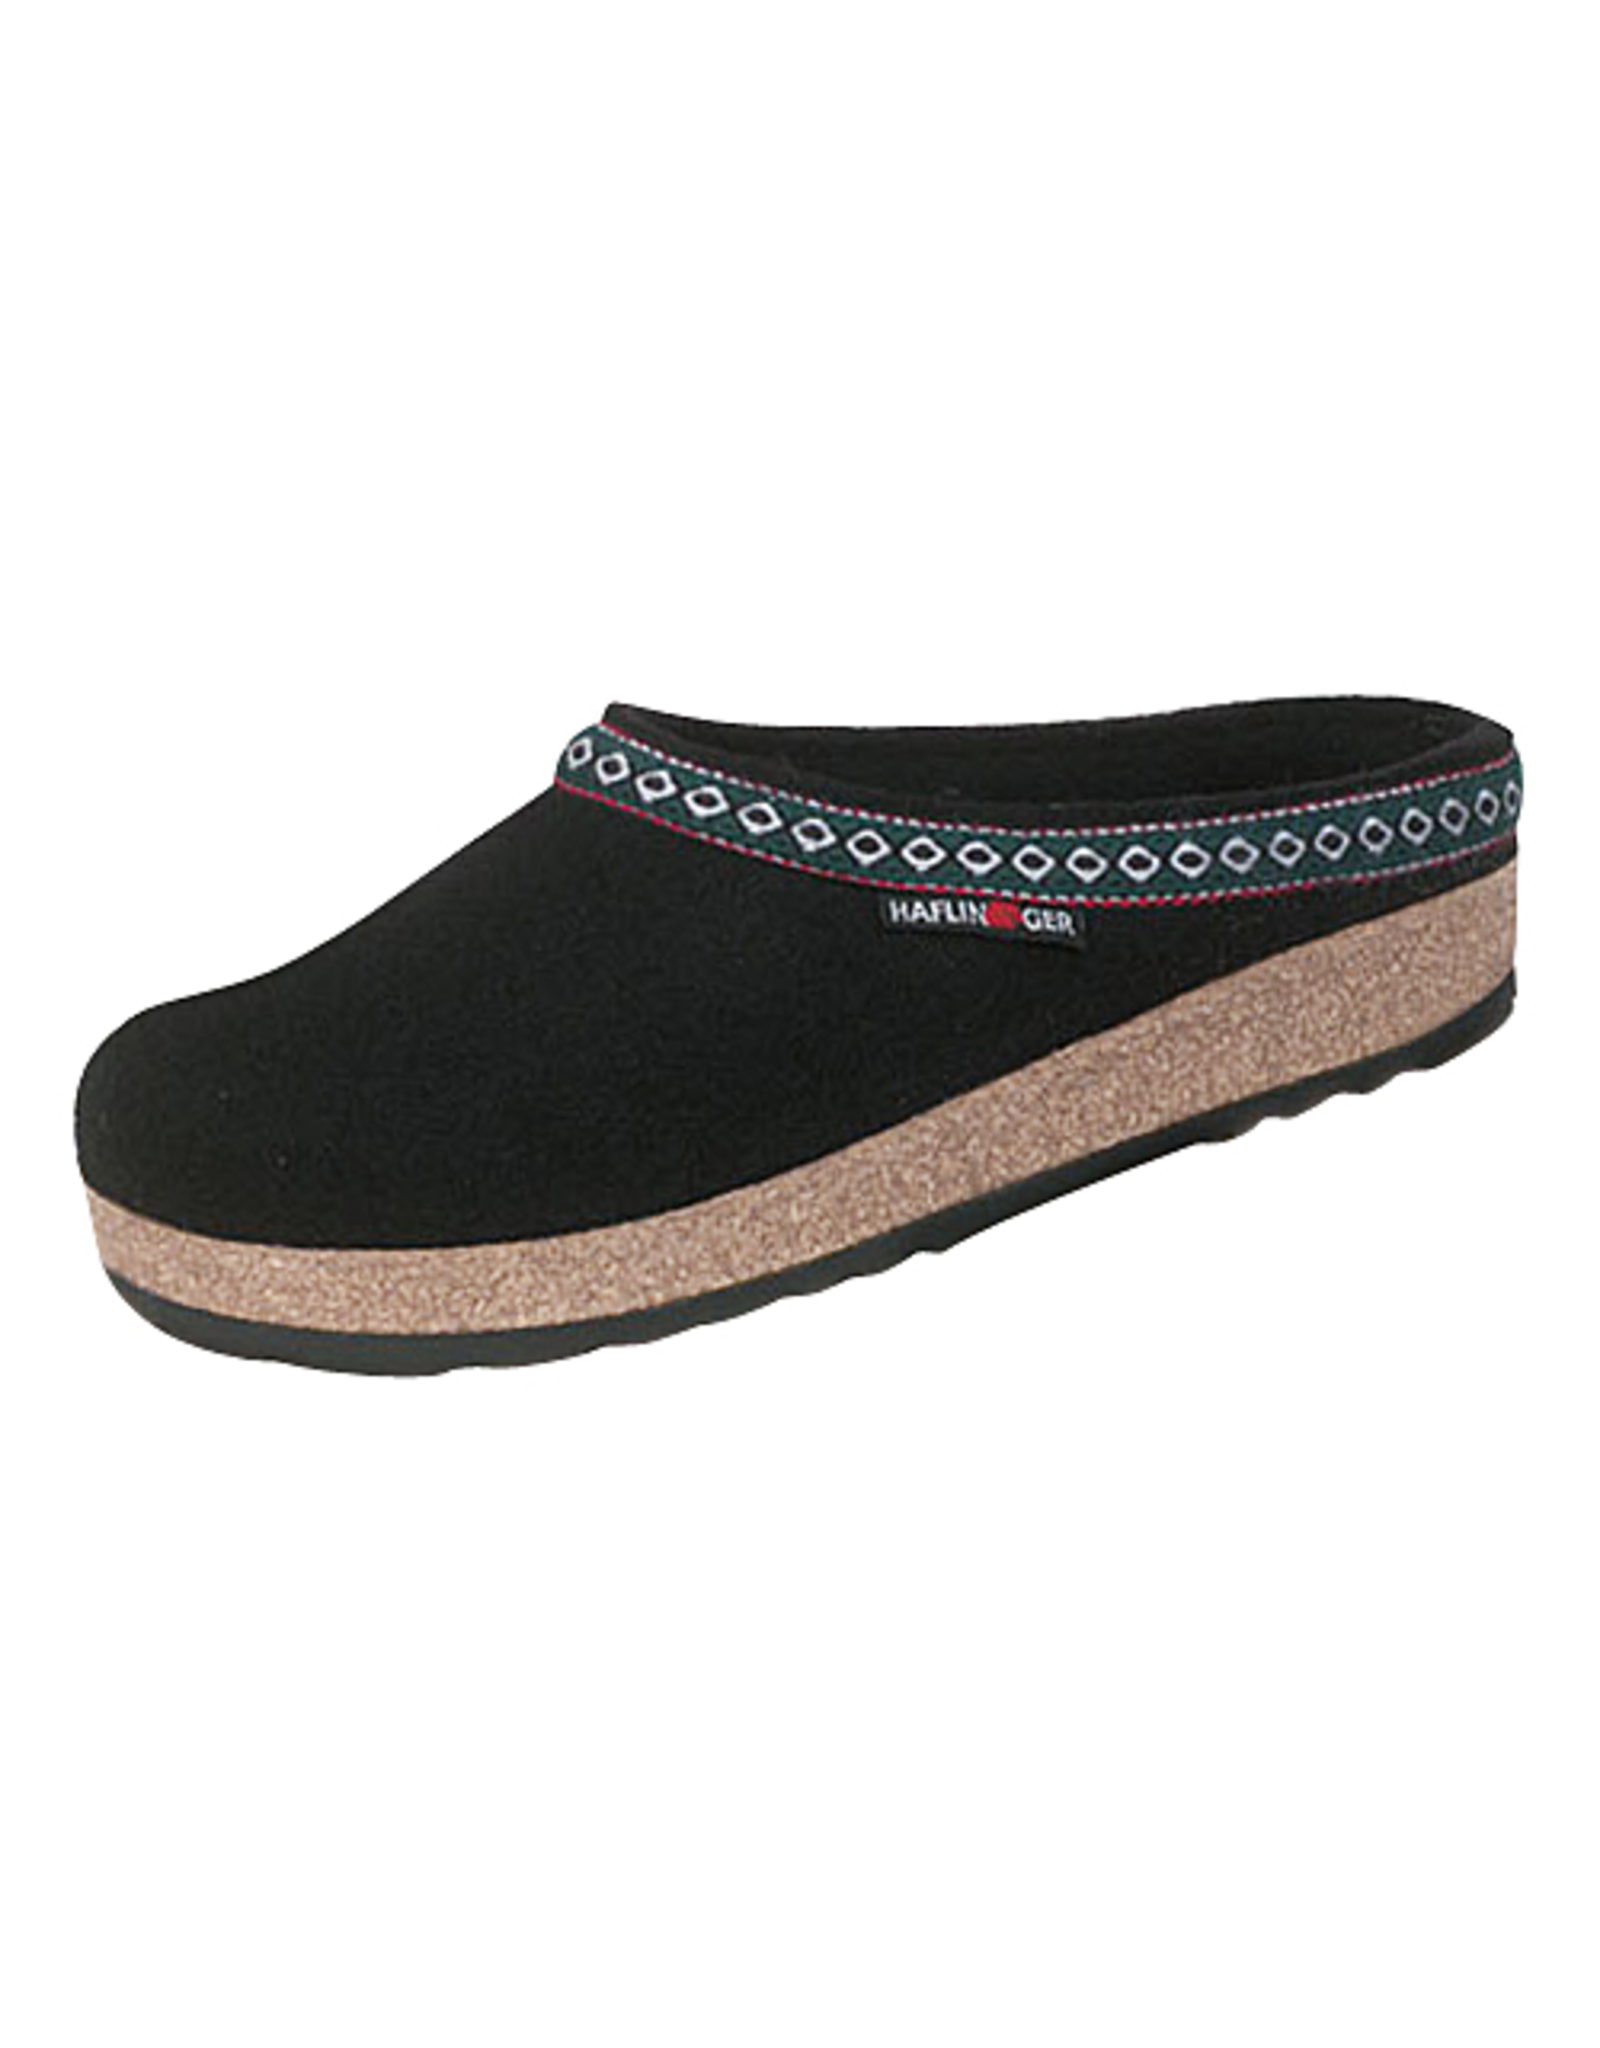 Haflinger Classic Grizzly Black Clog